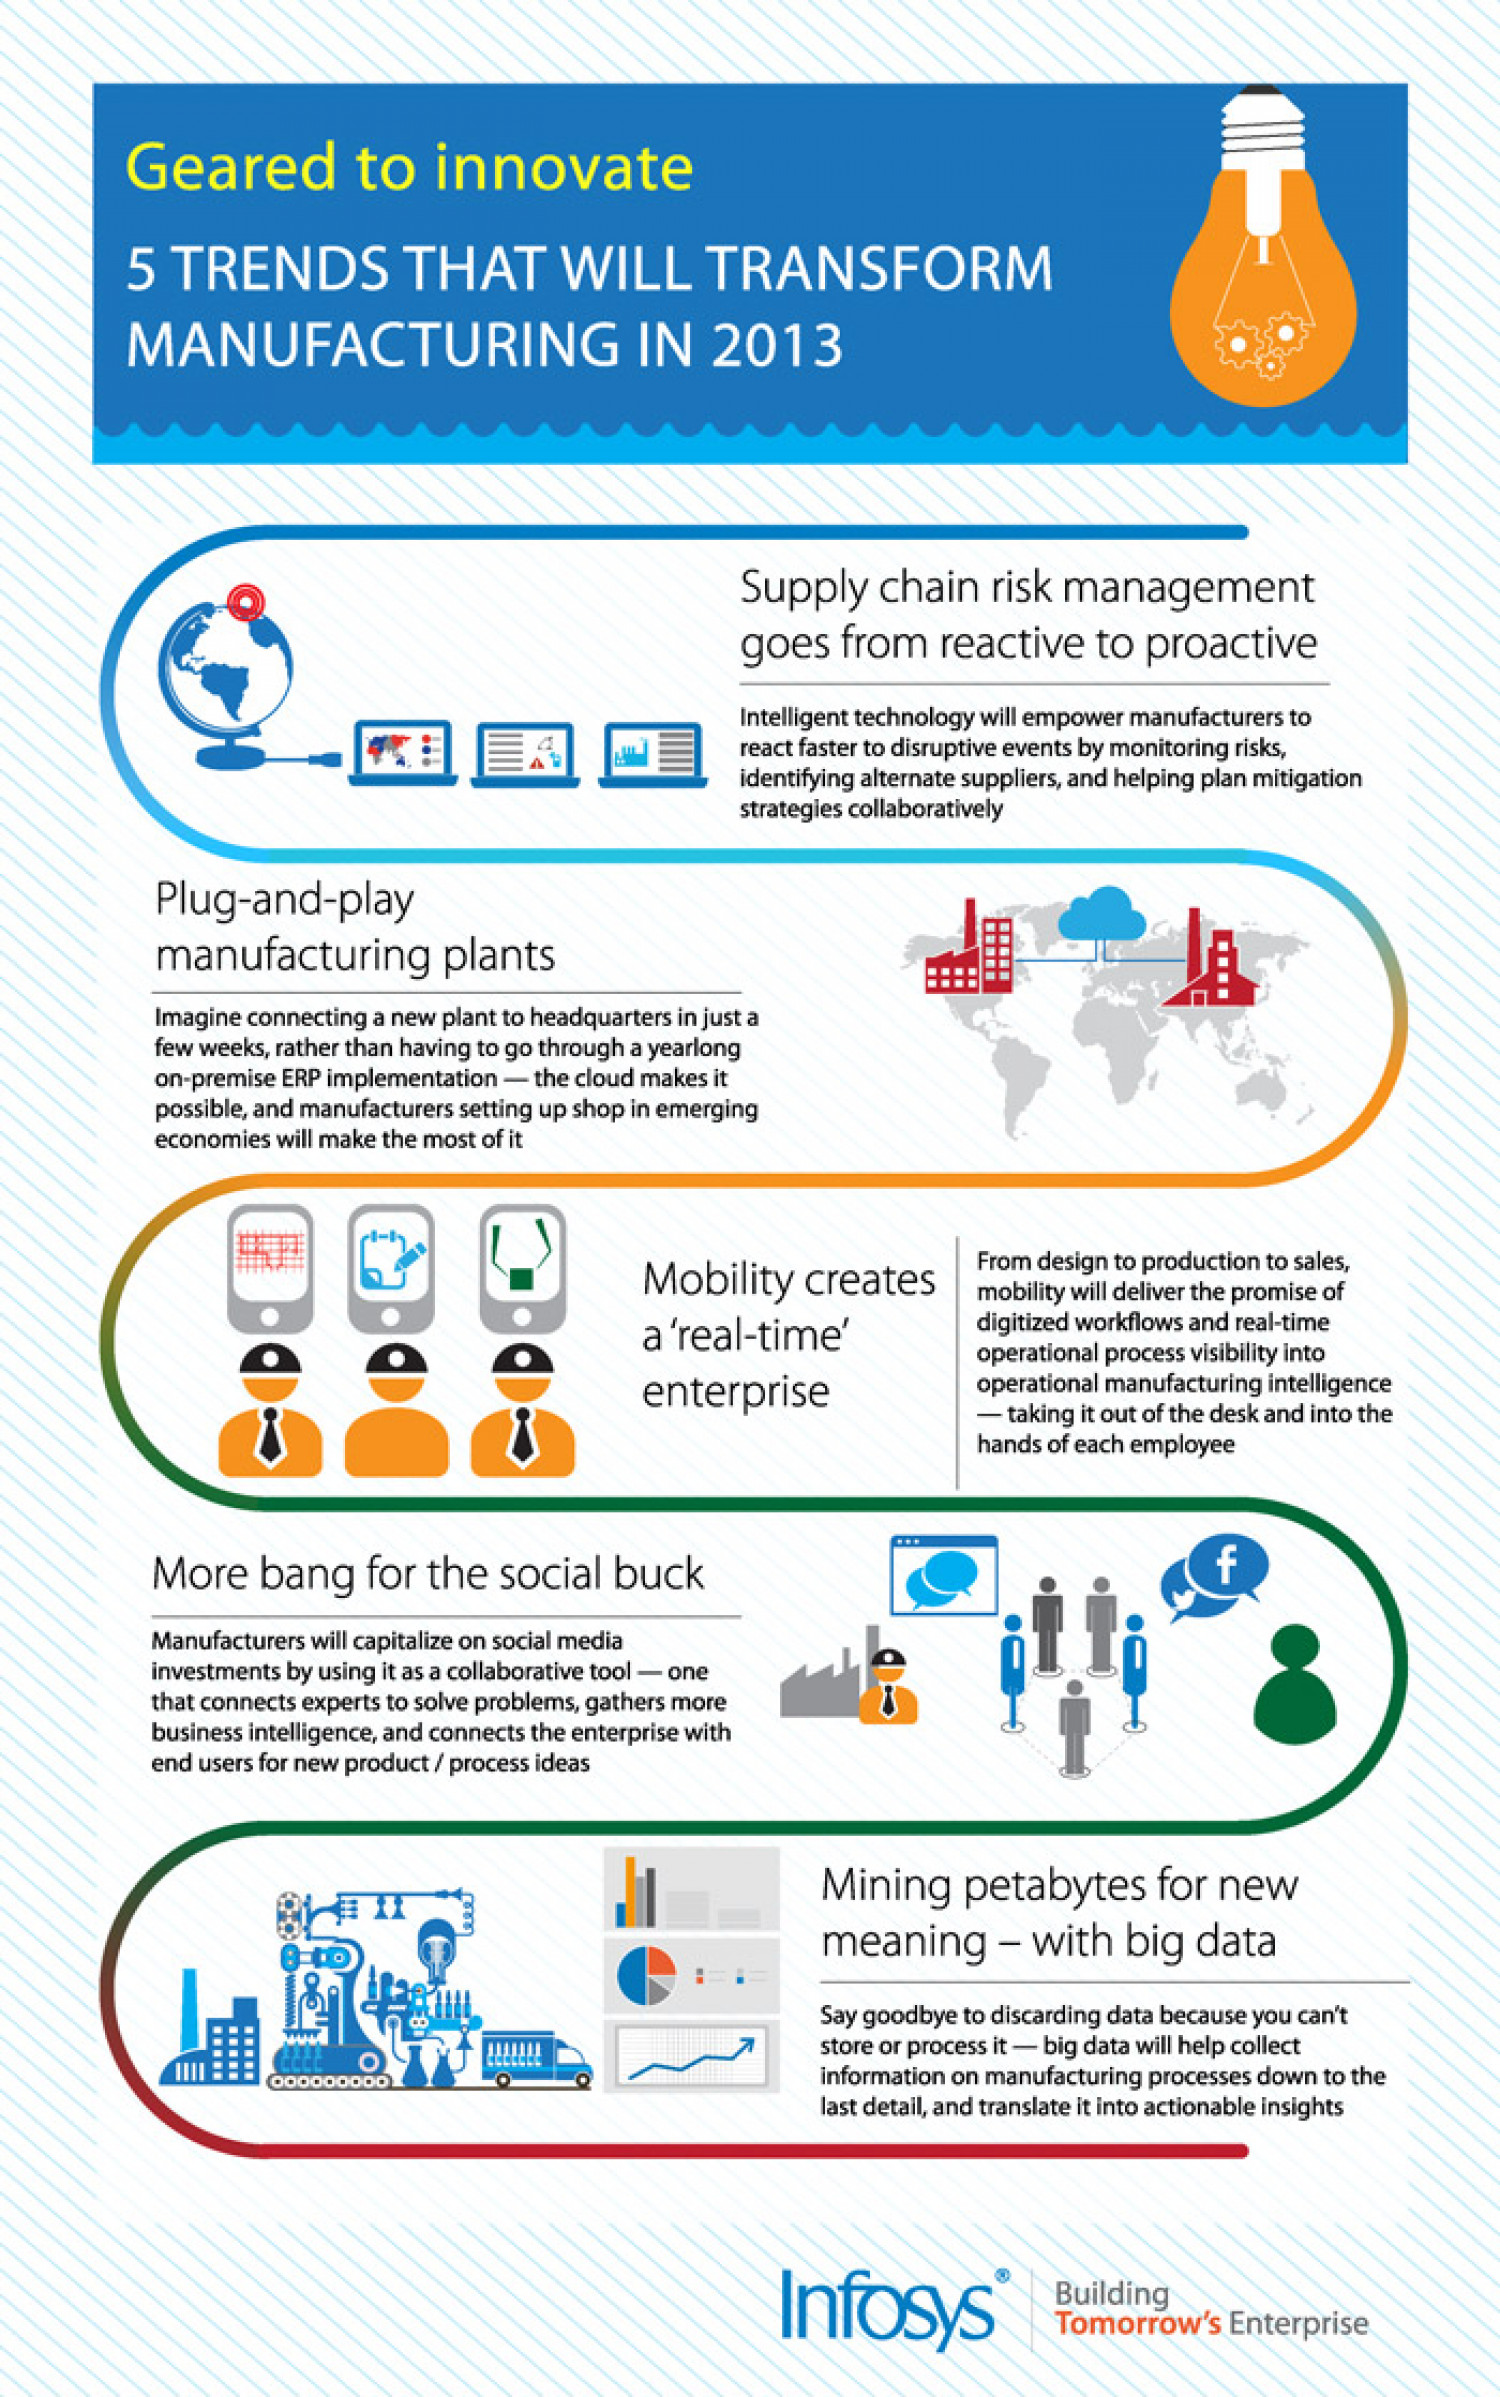 5 Trends That Will Transform Manufacturing In 2013 Infographic